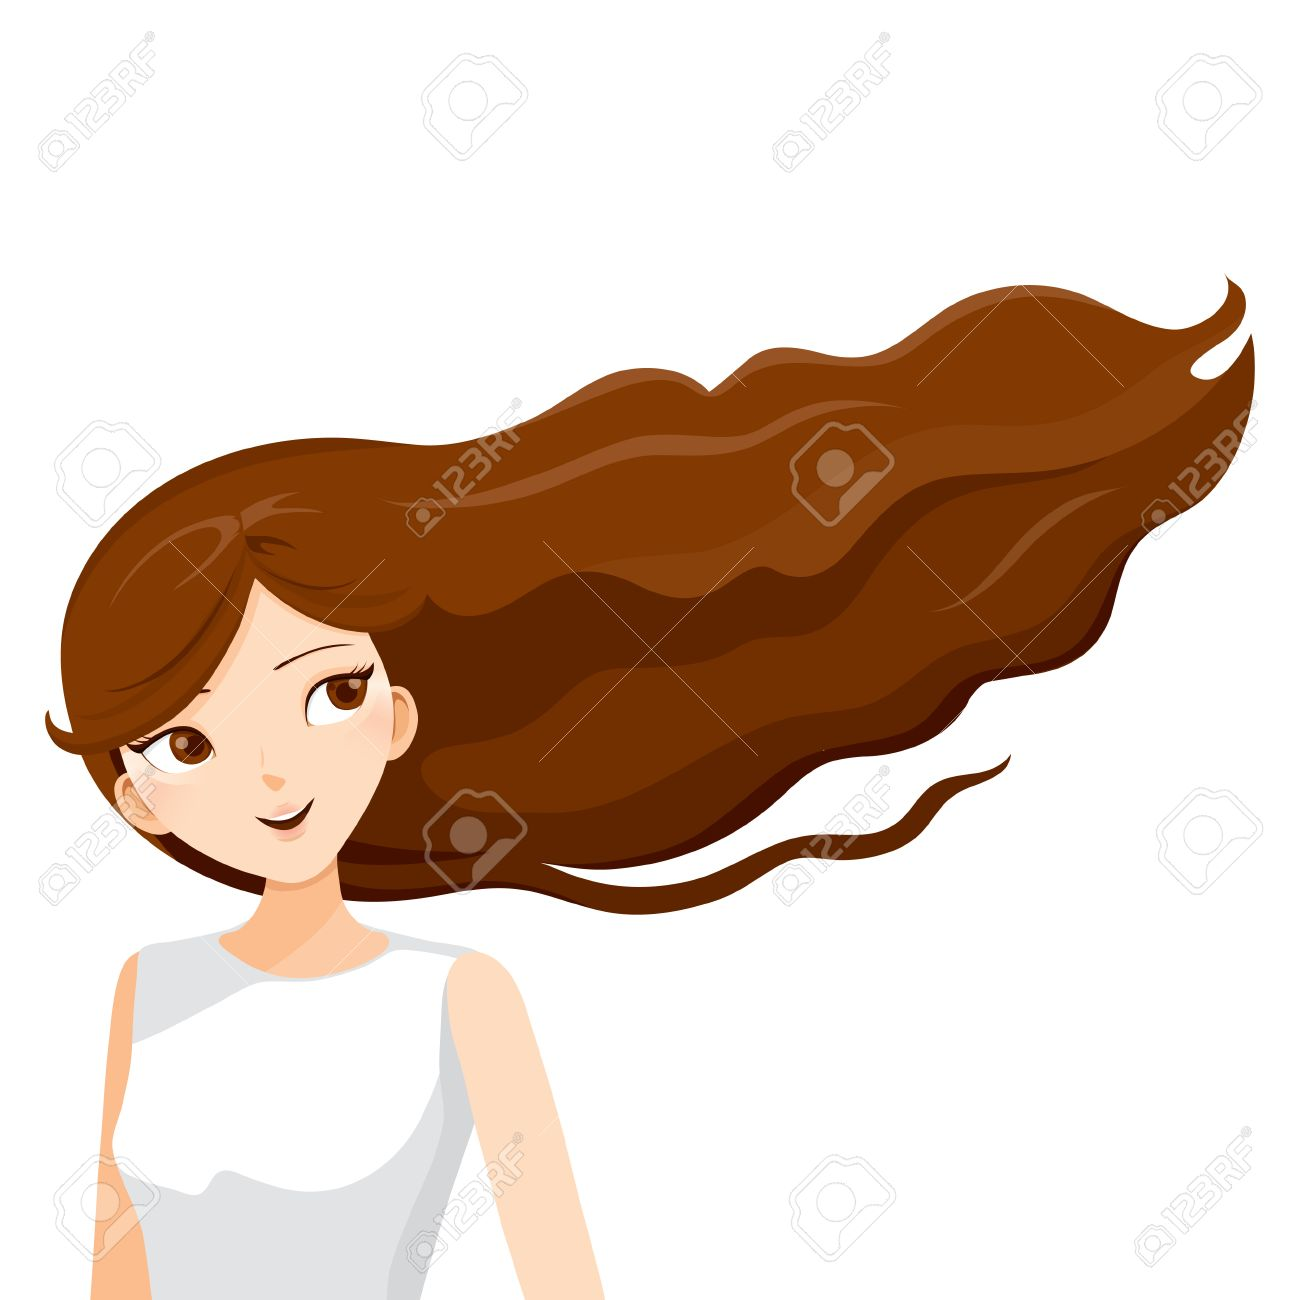 Hair Blowing In The Wind Clipart.